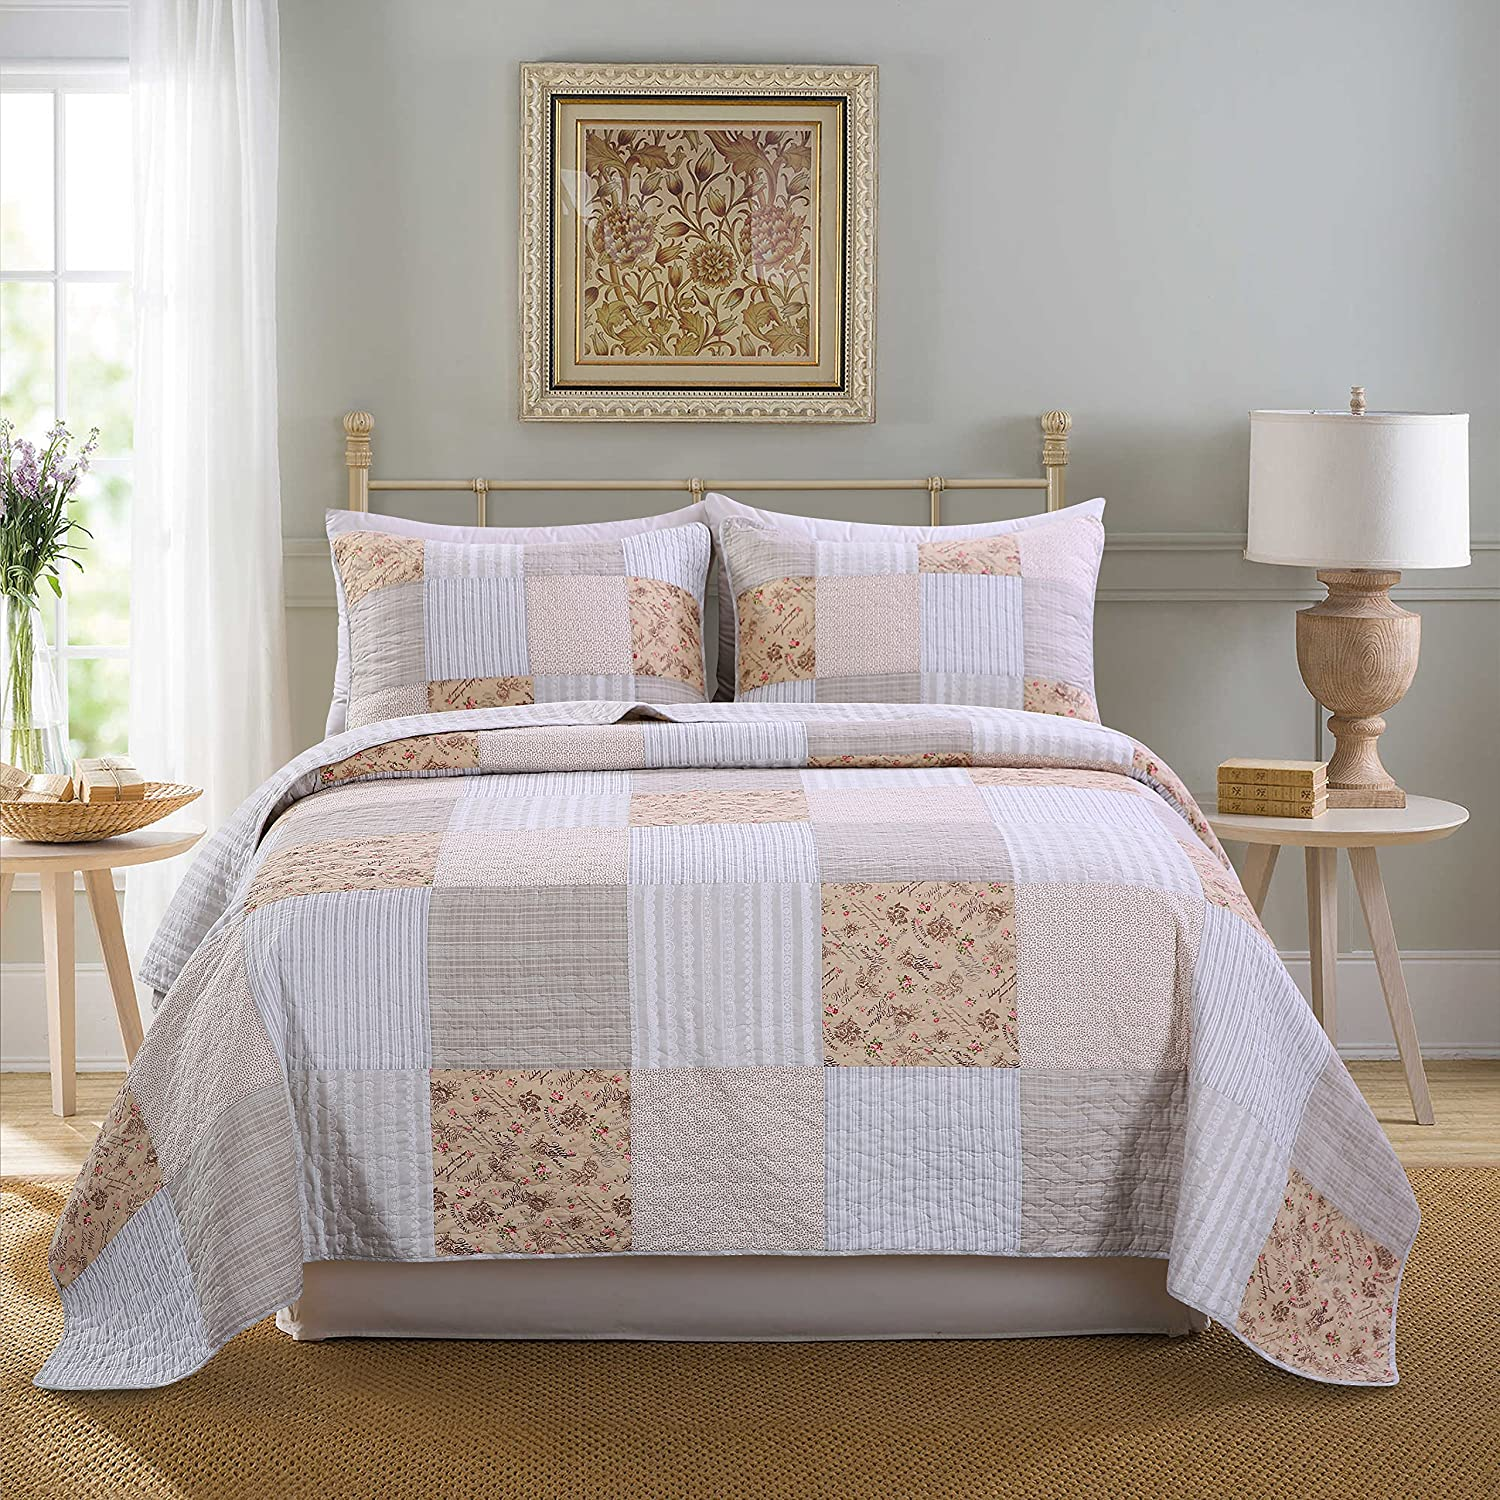 SLPR Country Lane 2-Piece Patchwork Cotton Bedding Quilt Set - Twin with 1 Sham   Farmhouse Country Quilted Bedspread